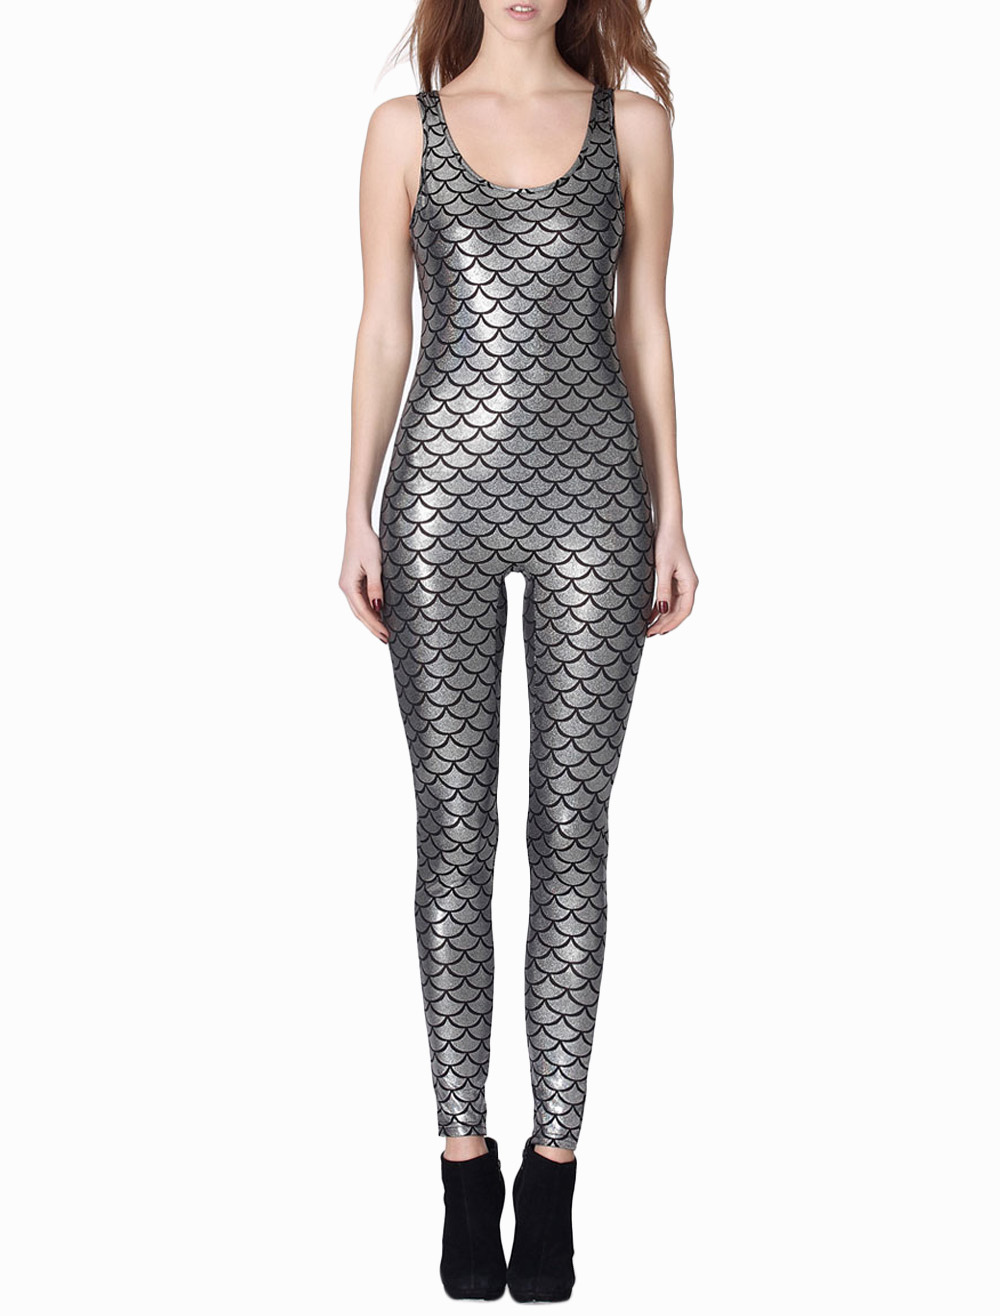 Snake Print Sexy Women's Jumpsuit Cheap clothes, free shipping worldwide